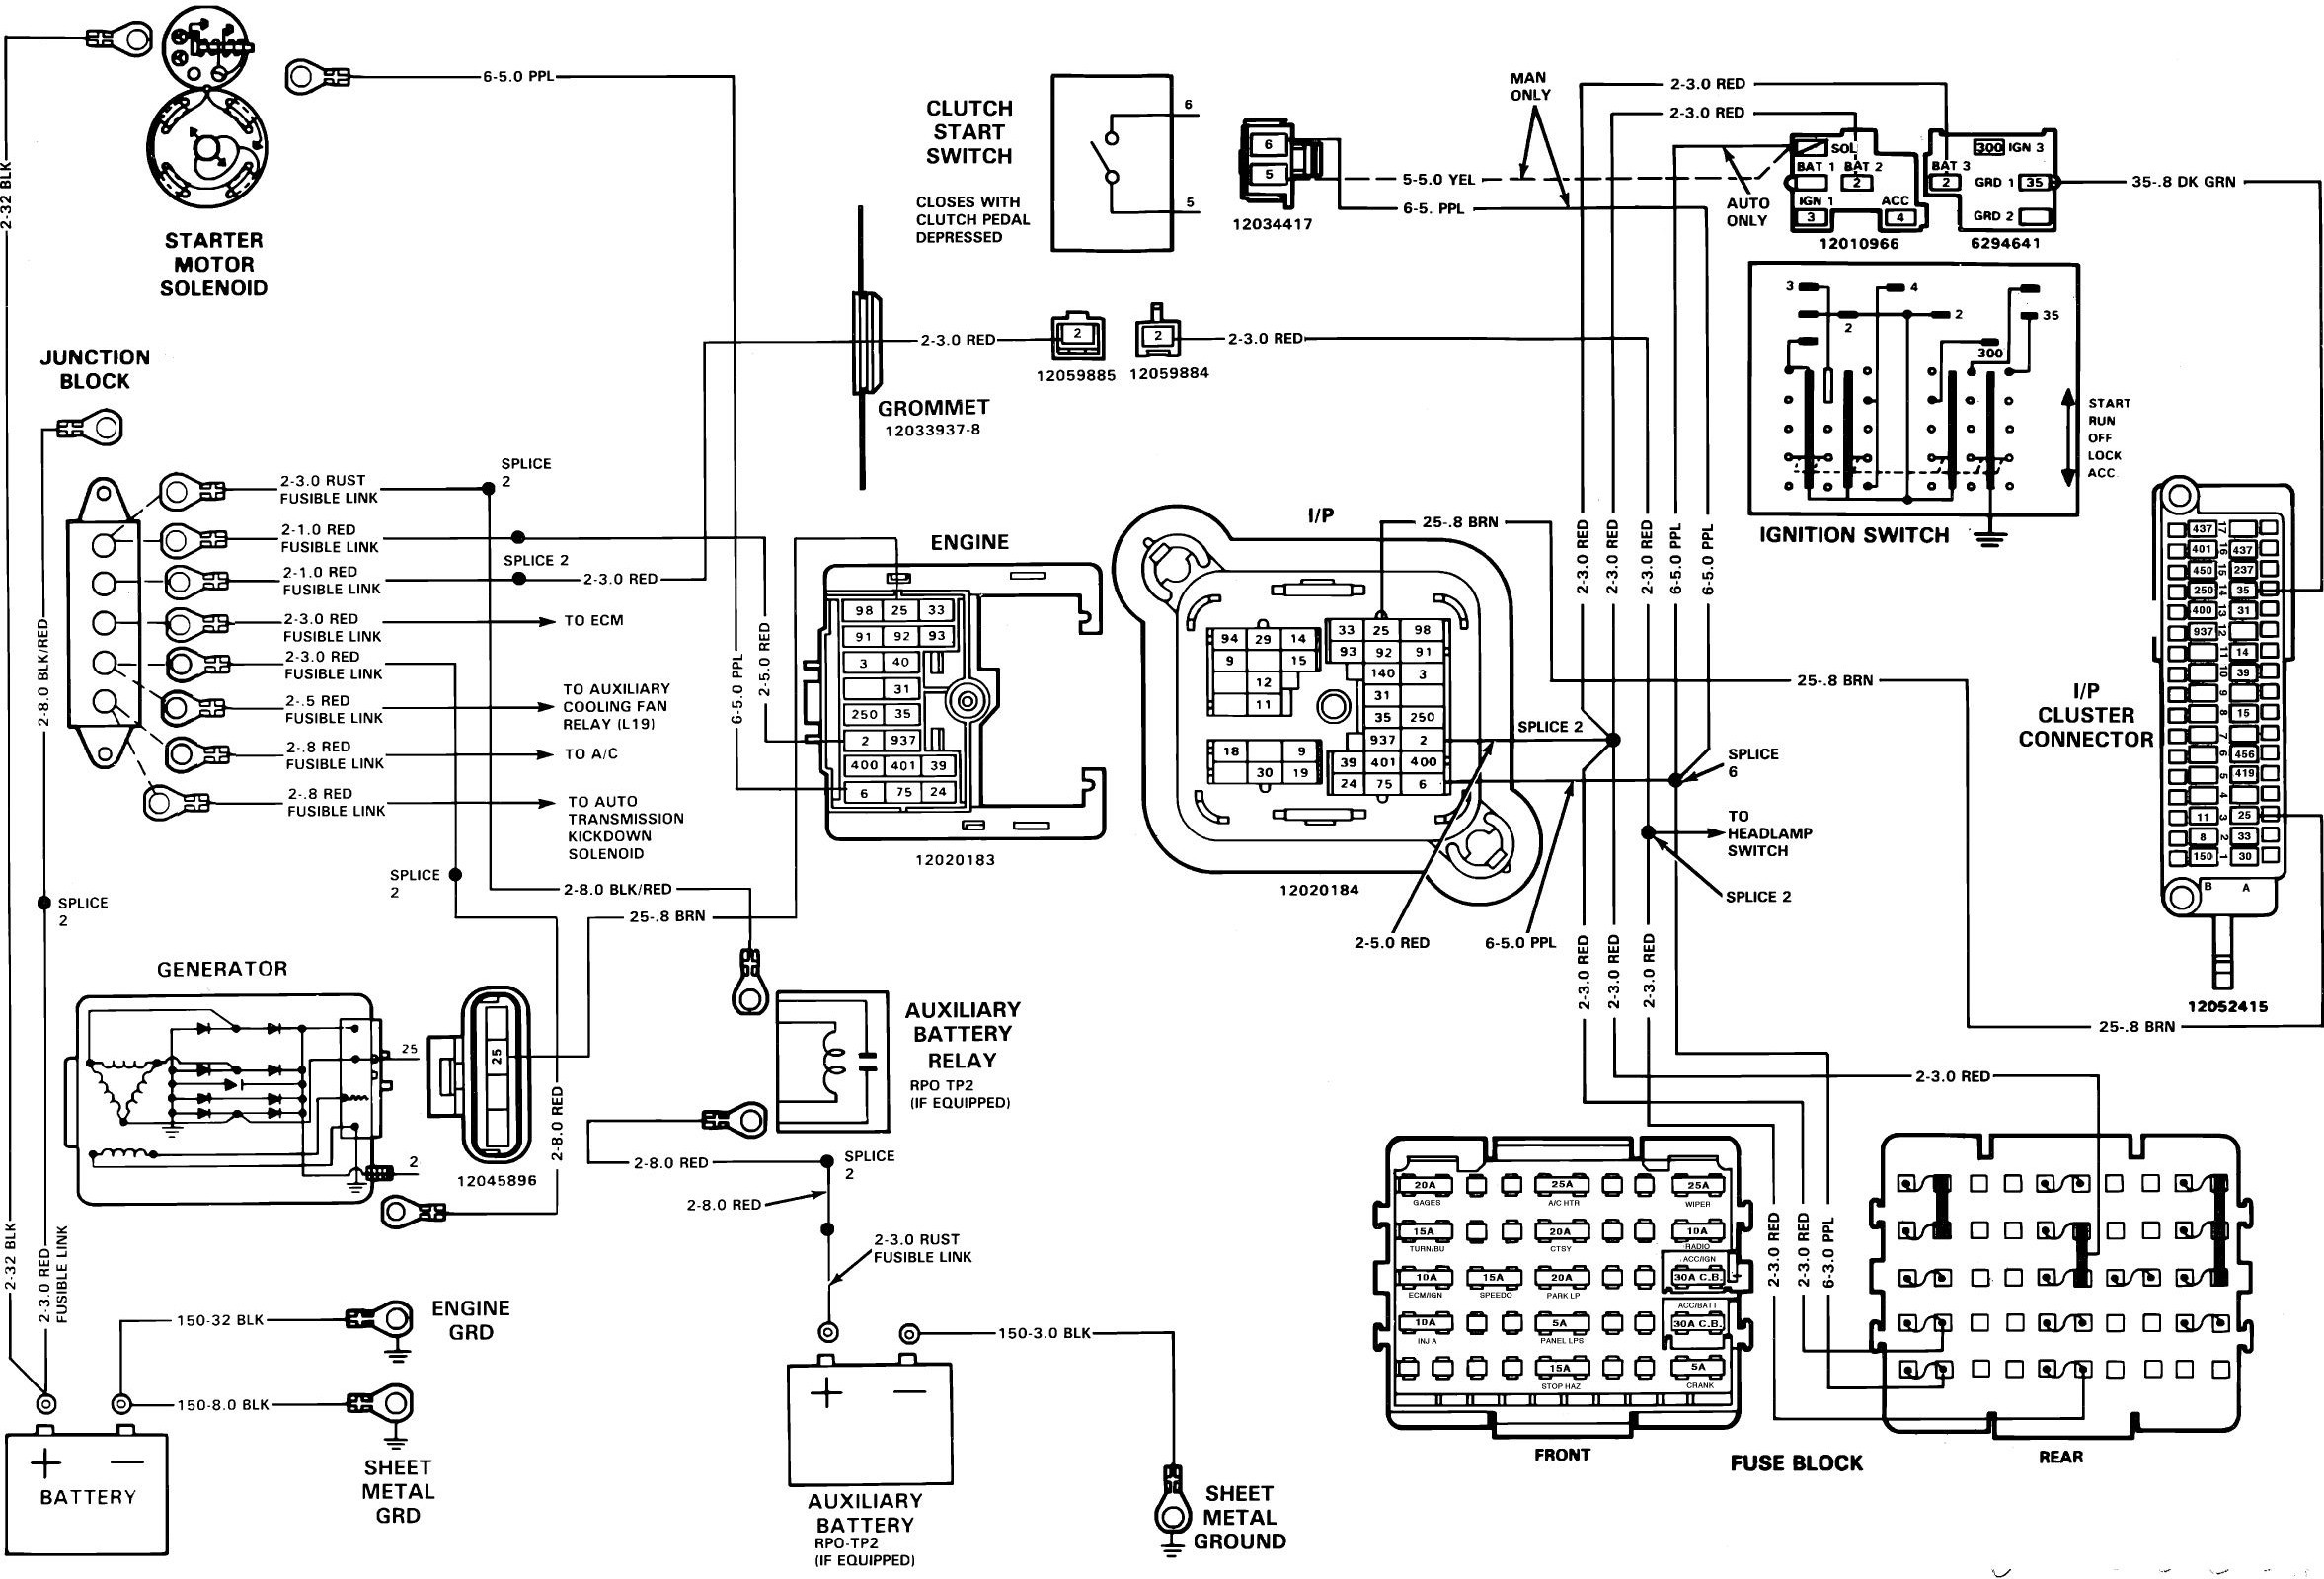 1988 gmc sierra 1500 engine wiring diagram